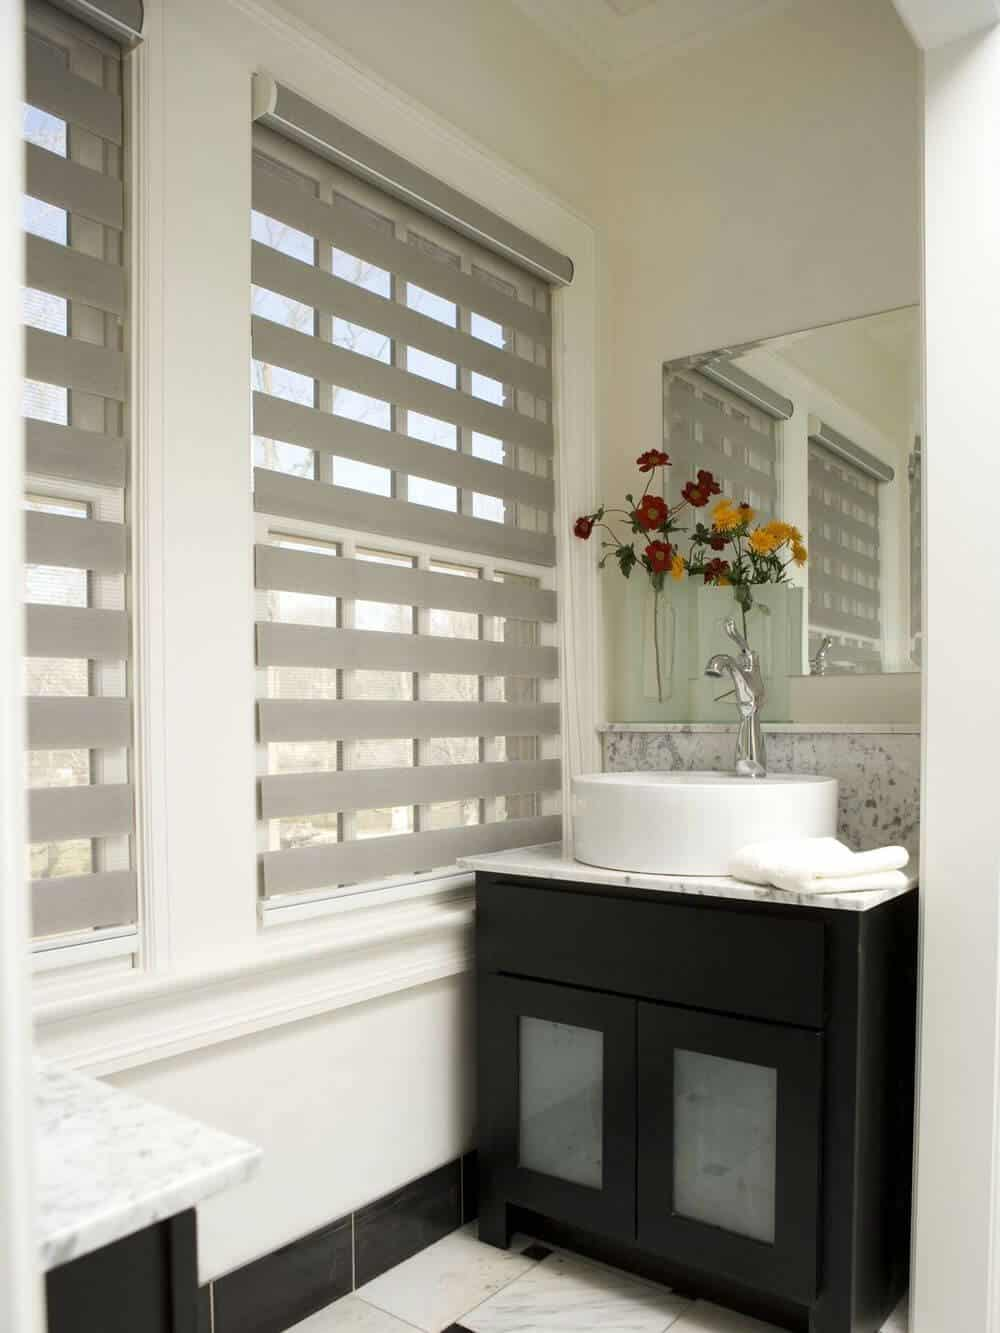 A primary bathroom offering two sink counters, both featuring marble countertops and large vessel sinks. The room has a tall ceiling and glass windows featuring transitional window shades.